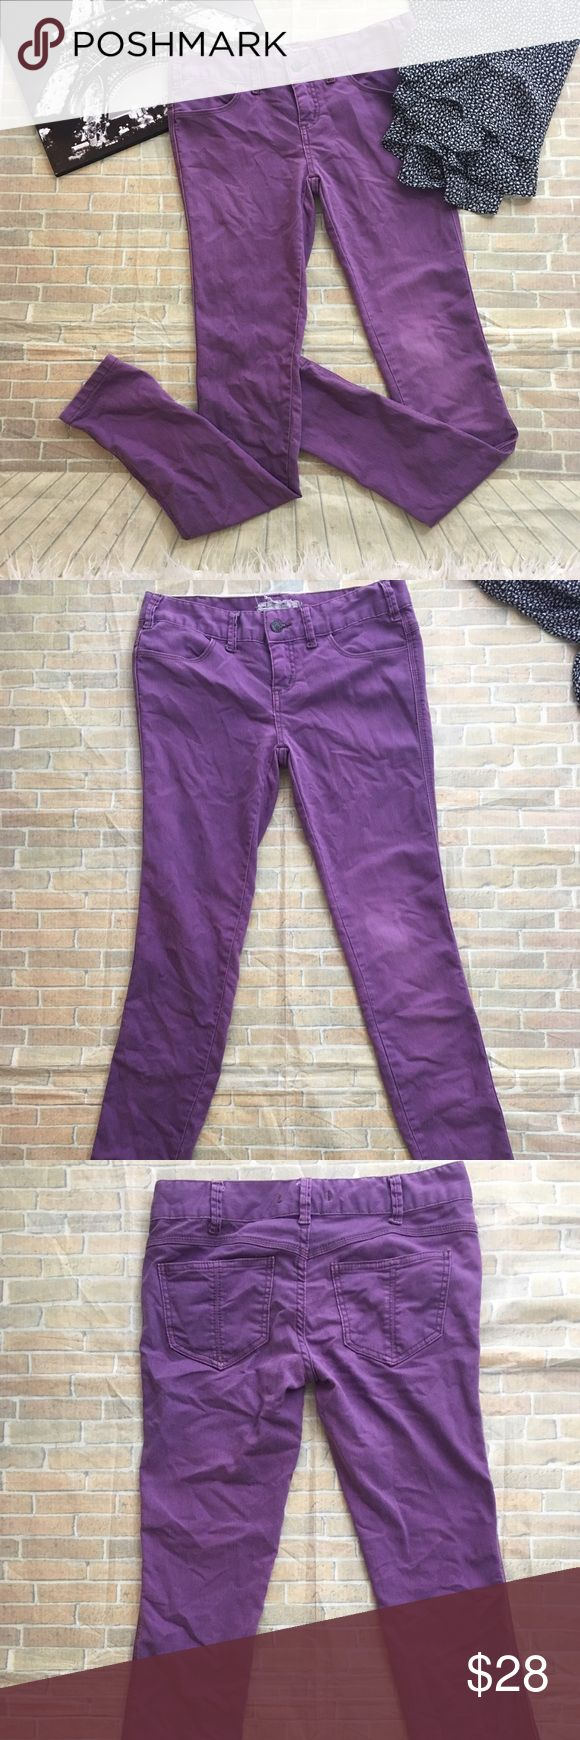 Free People Orchid Purple Skinny Jeans Orchid Purple Skinny Jeans - Free People - Size 26 - 5 Pocket low rise - gently worn, no rips or stains - light and even wash fade Free People Jeans Skinny